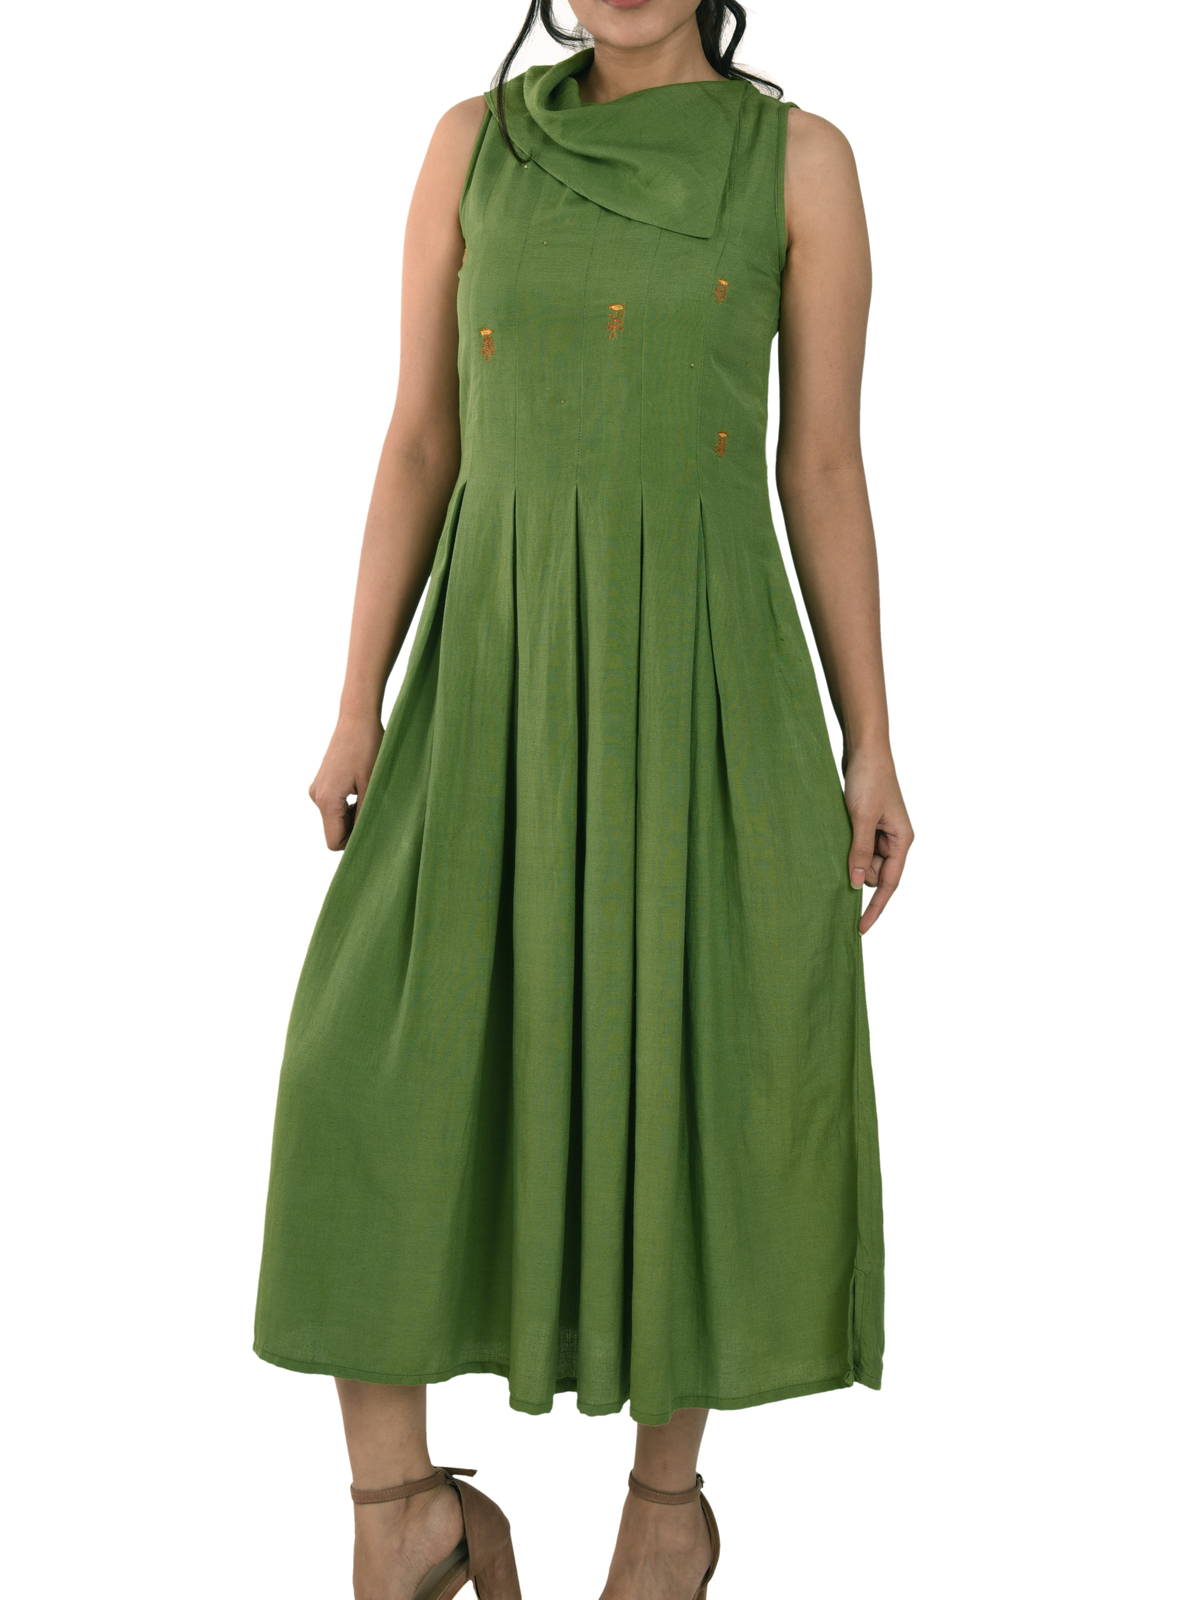 Primary image for Custom Made Olive Green Linen Split Collar Box Pleated Maxi Dress